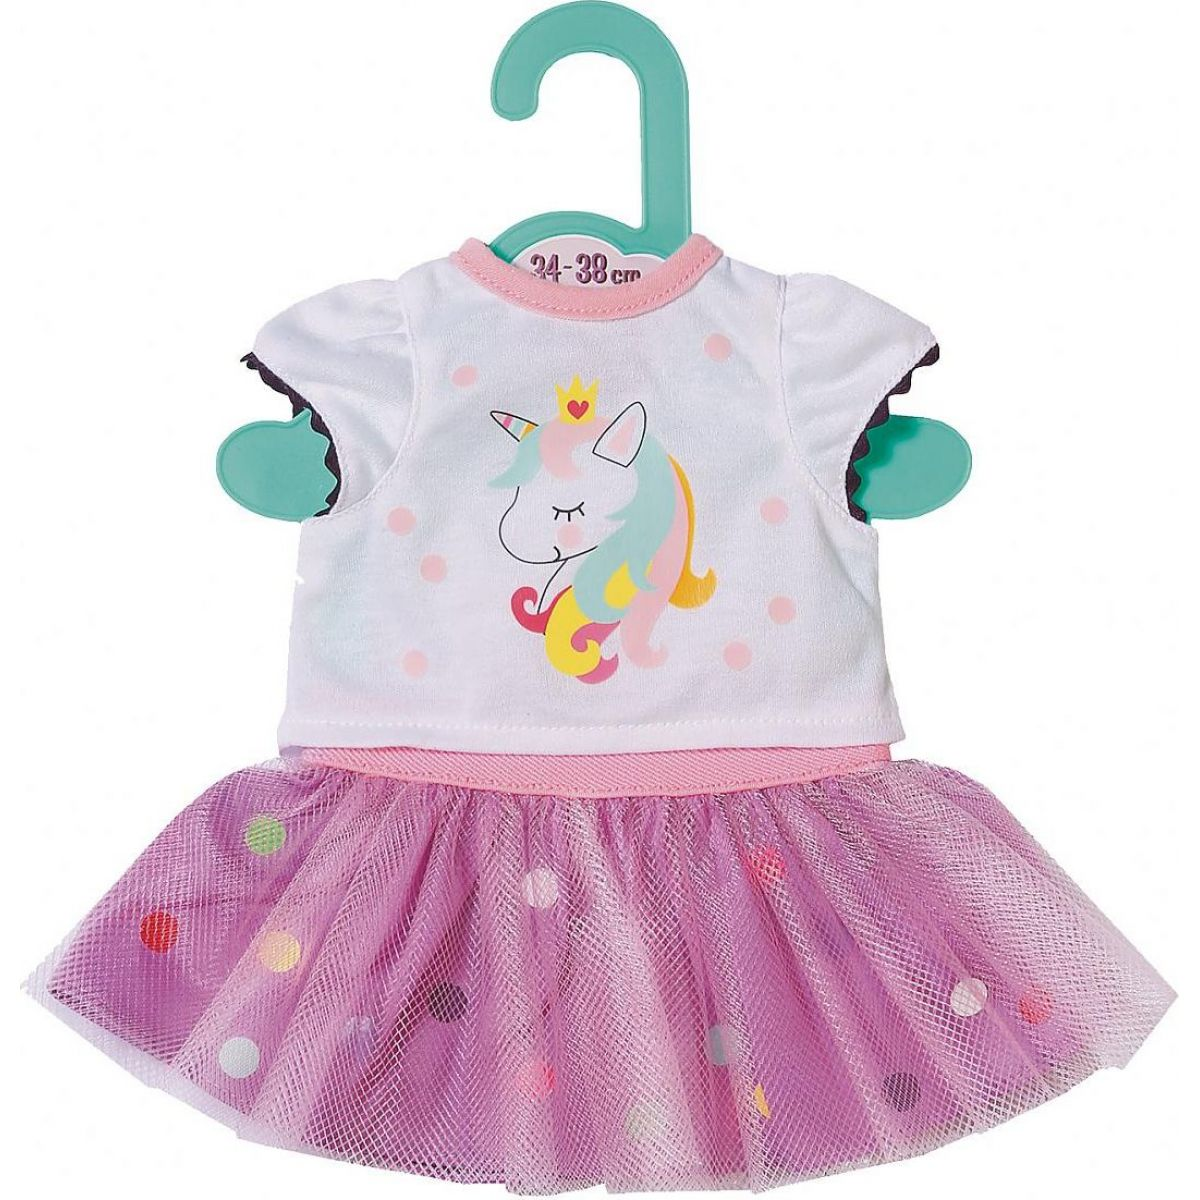 Zapf Creation Dolly Moda Tričko s tutu sukýnkou 36 cm